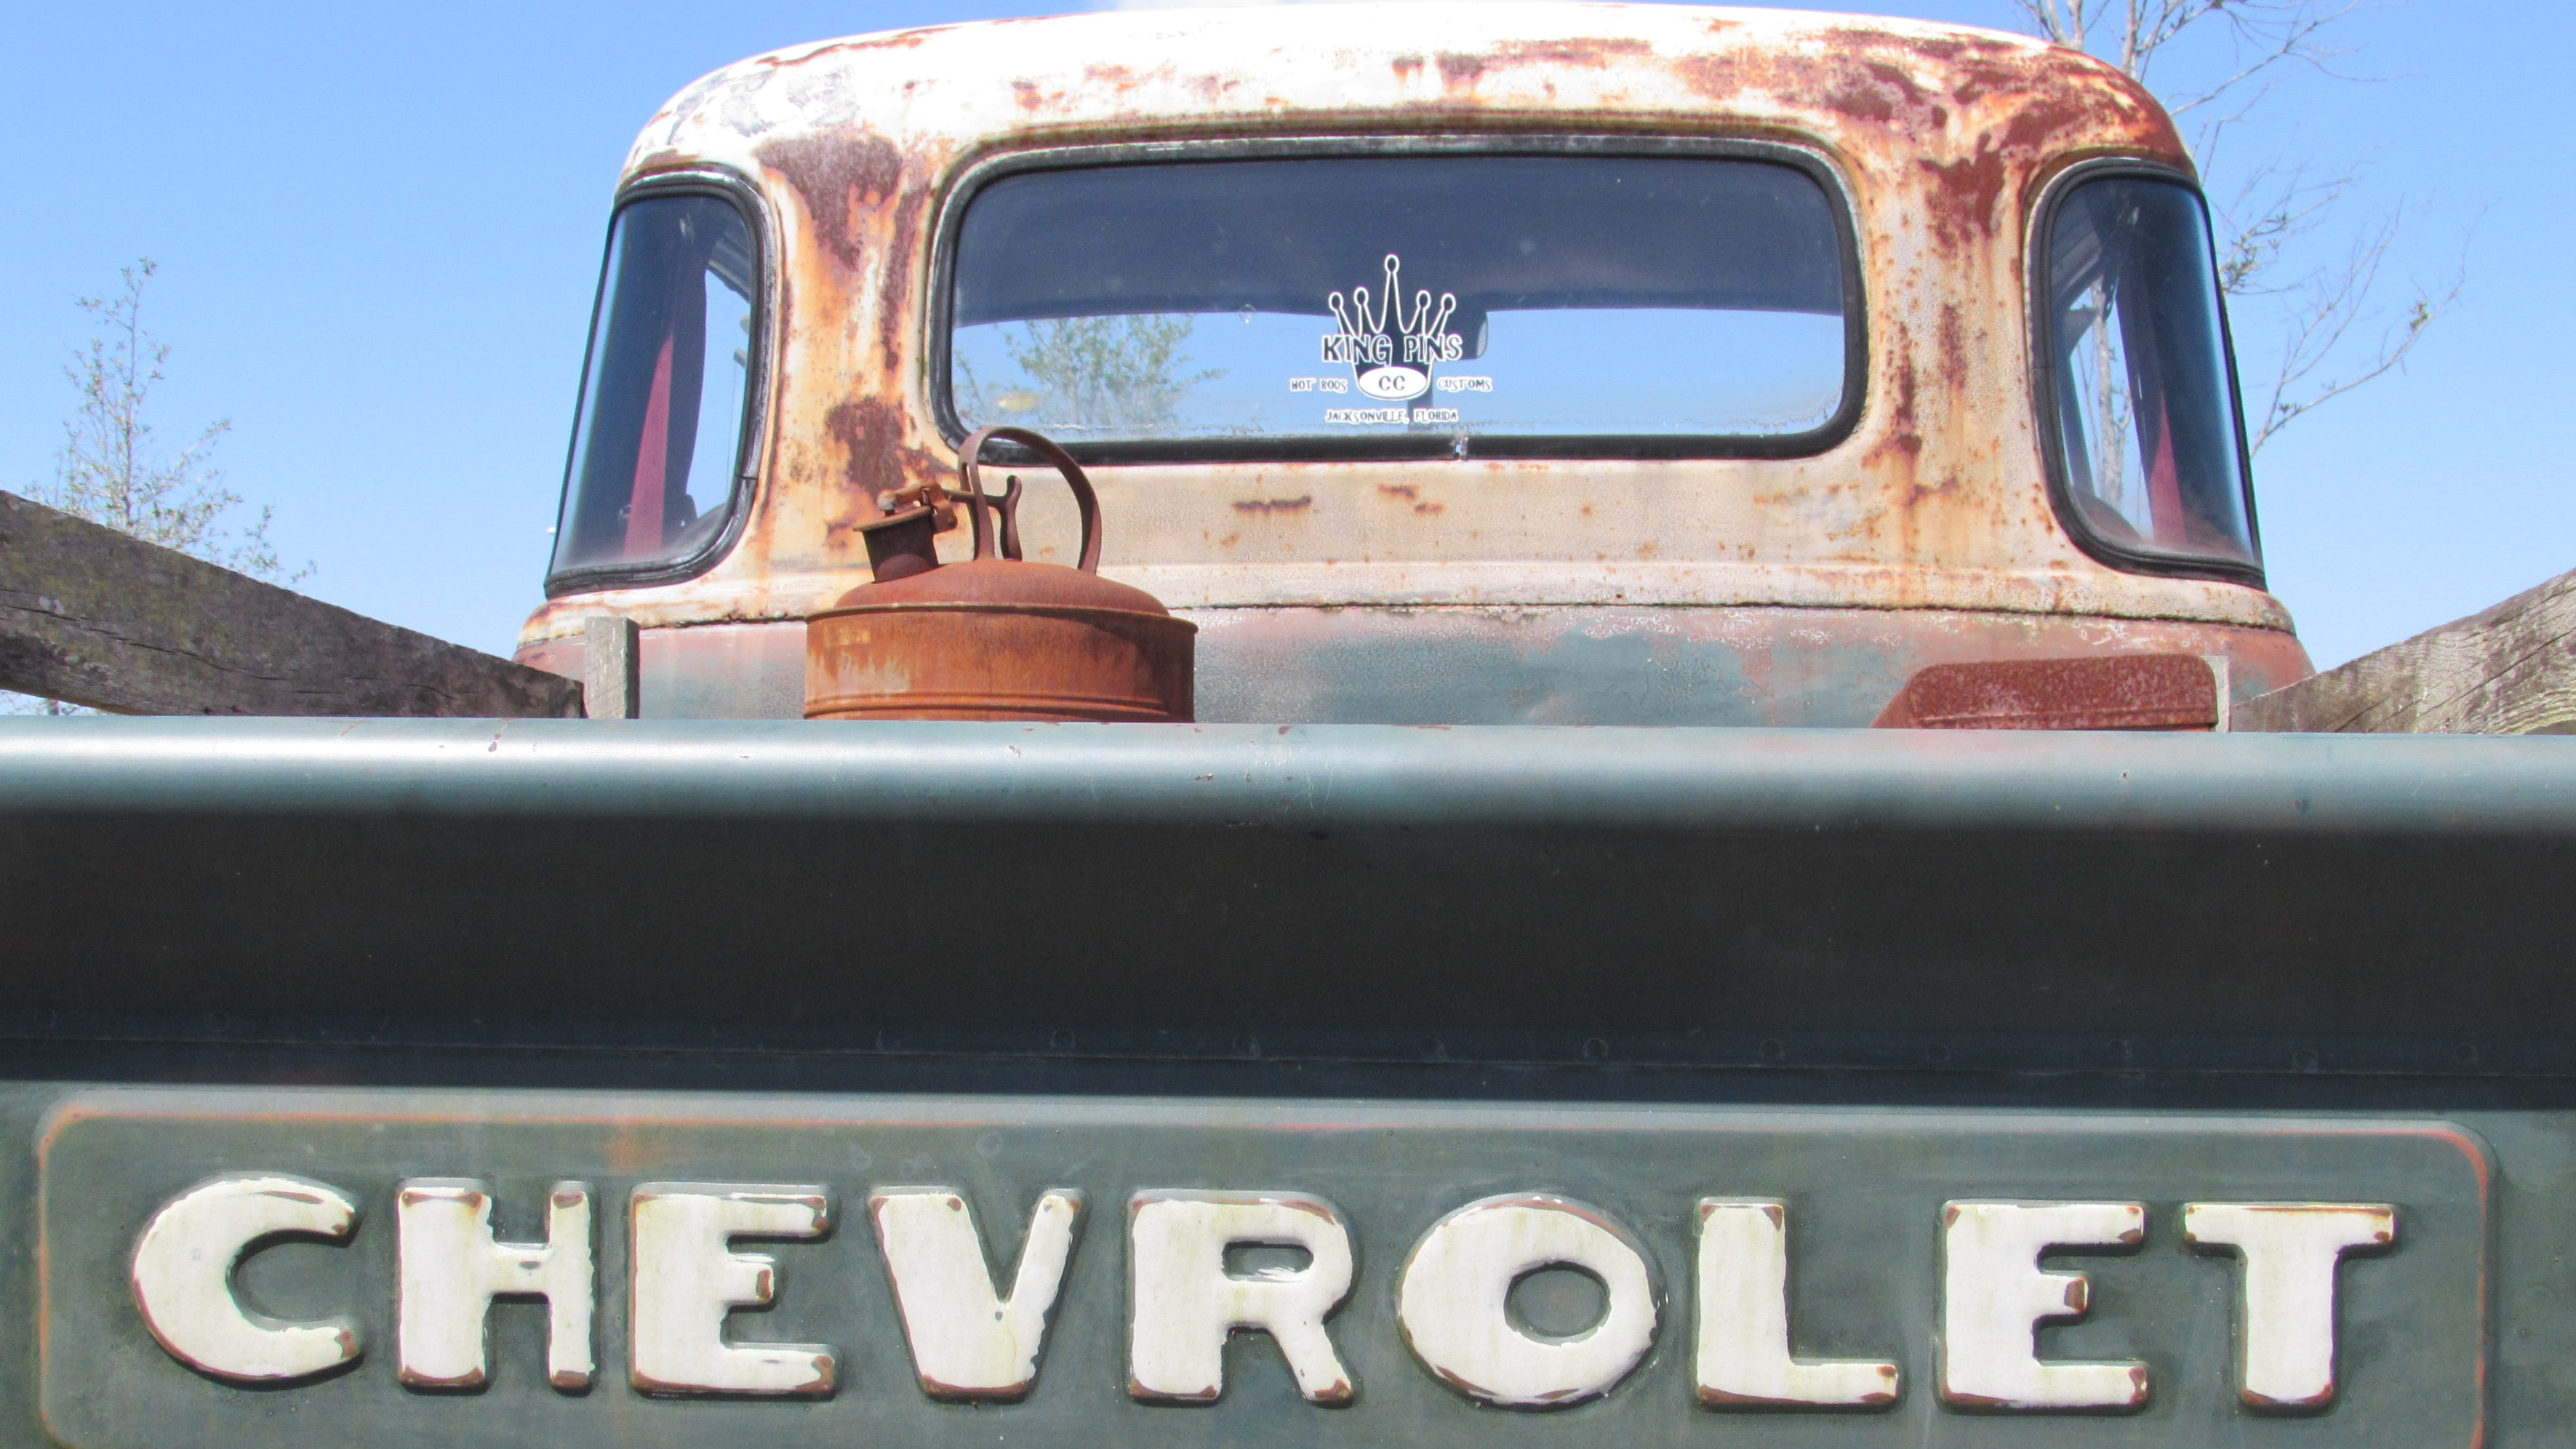 A Chevrolet truck proves beauty is in the eye of the beholder.